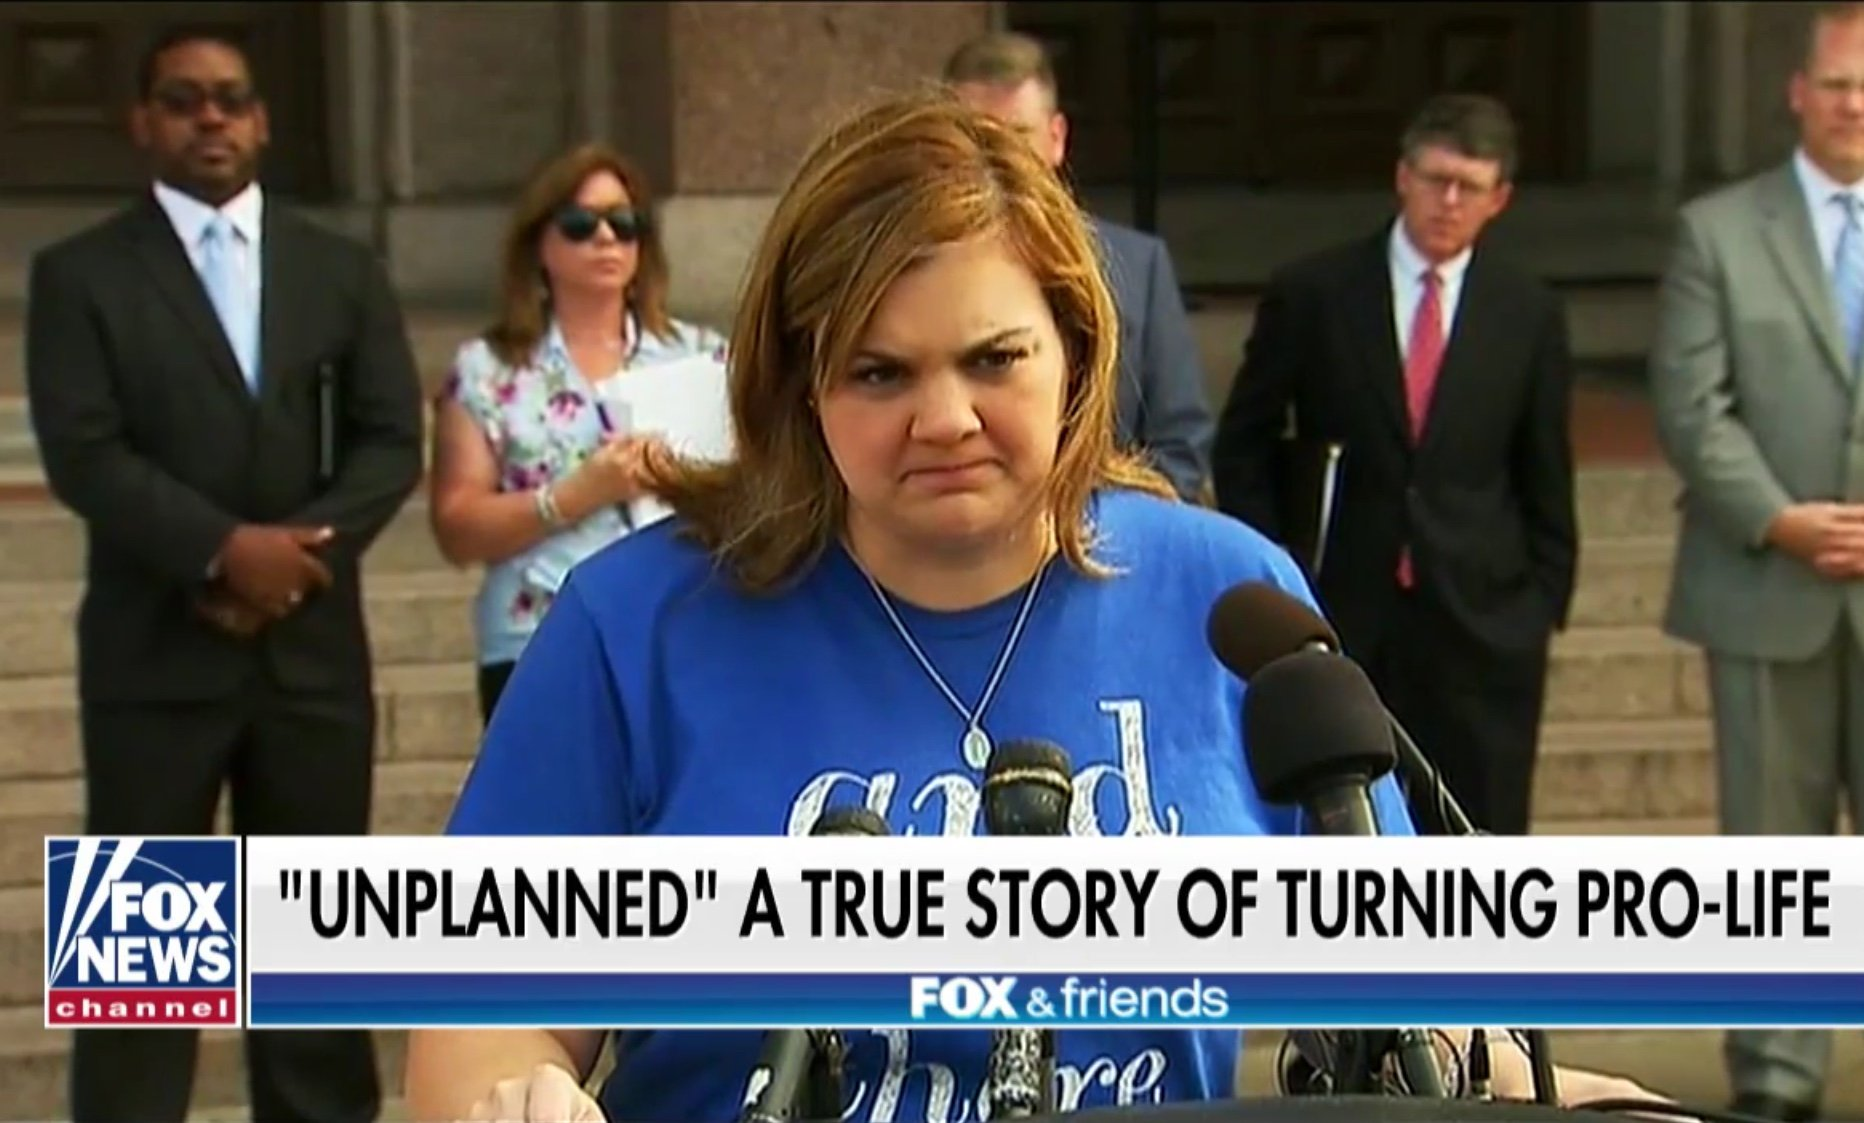 Former Planned Parenthood employee turned pro-life activist Abby Johnson speaks to reporters. Fox News screenshot, Dec. 18, 2018.